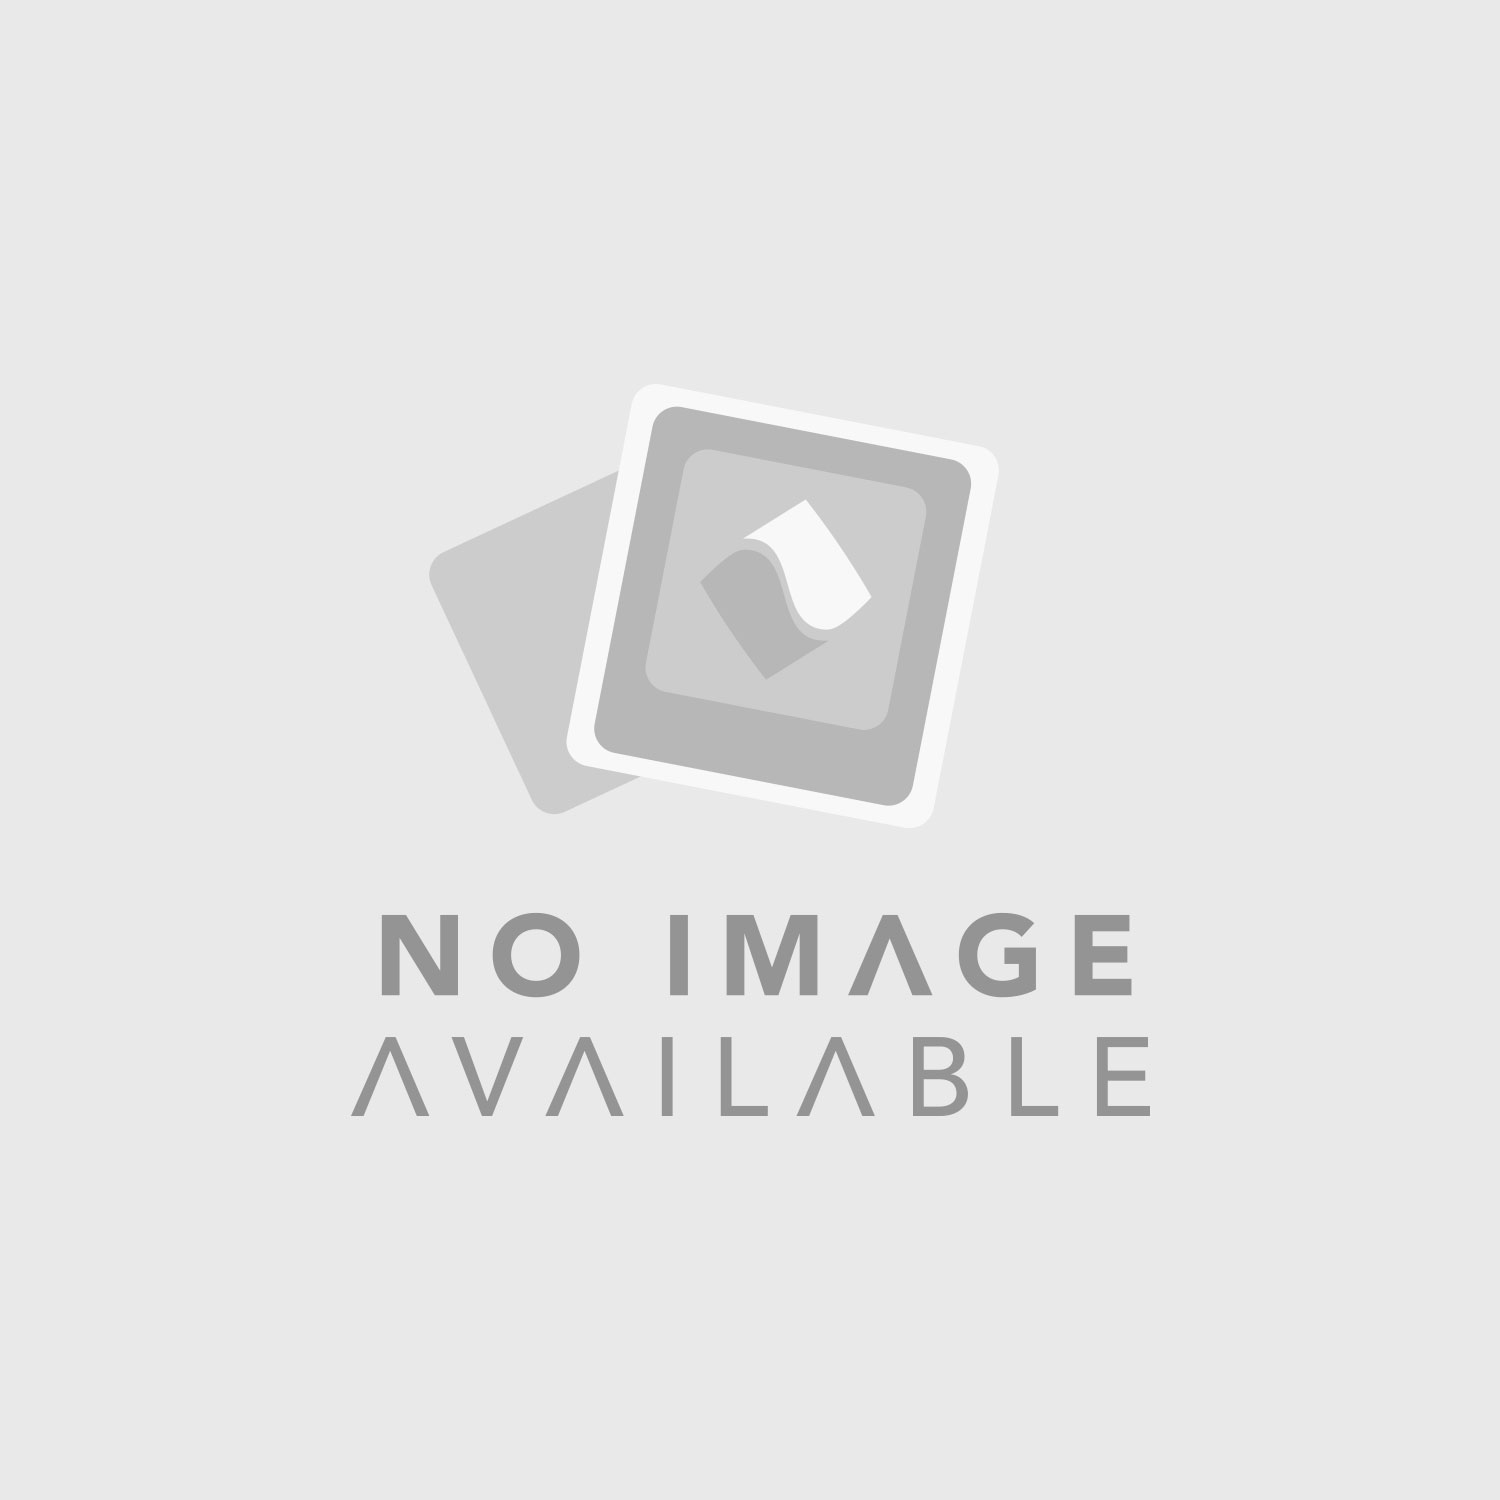 Audio-Technica ATW-1312/L Handheld/Lavalier Digital Wireless System